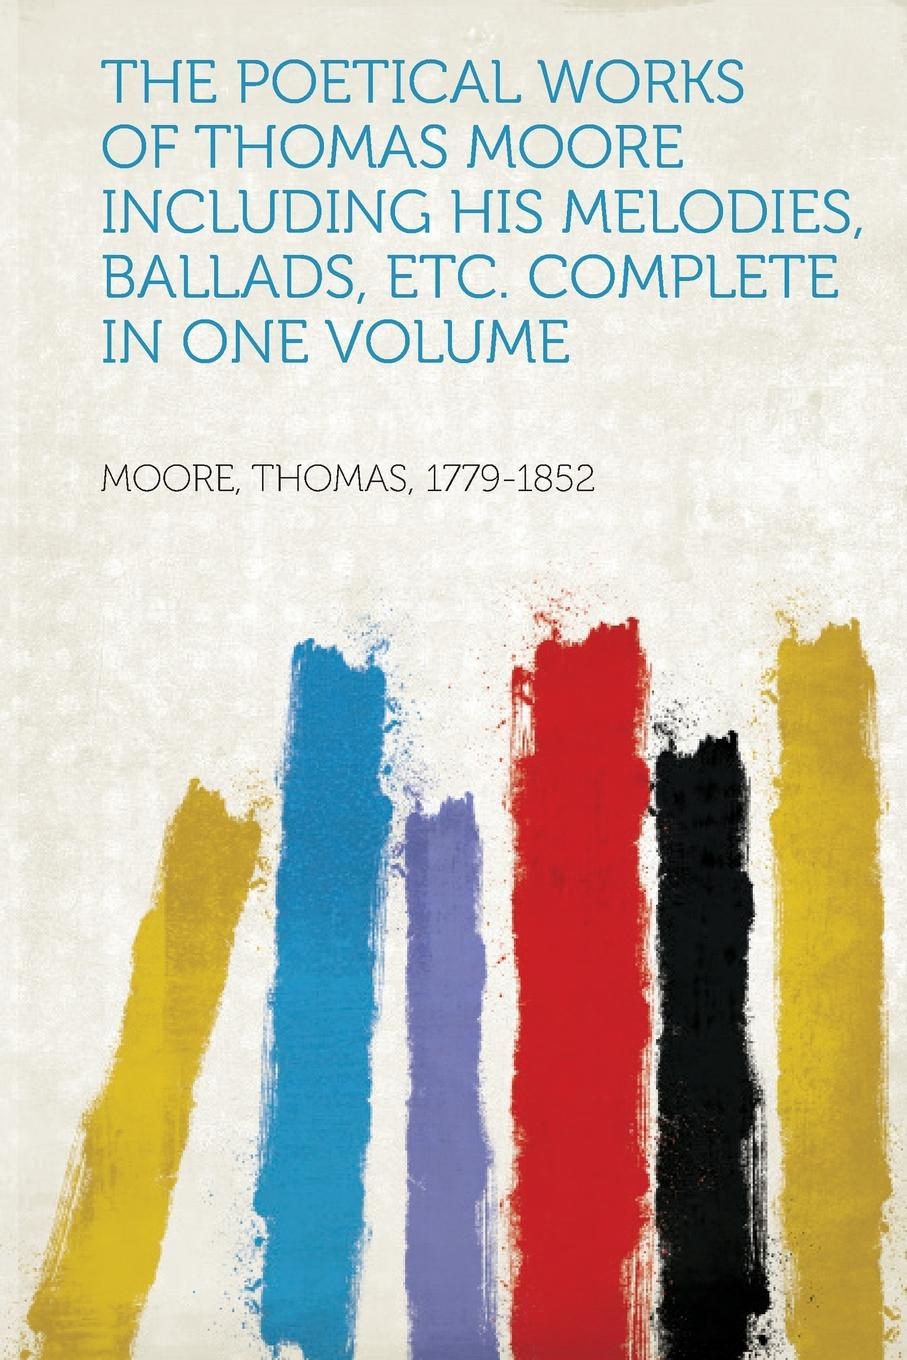 Thomas Moore The Poetical Works of Thomas Moore Including His Melodies, Ballads, Etc. Complete in One Volume thomas moore the poetical works of thomas moore volume 4